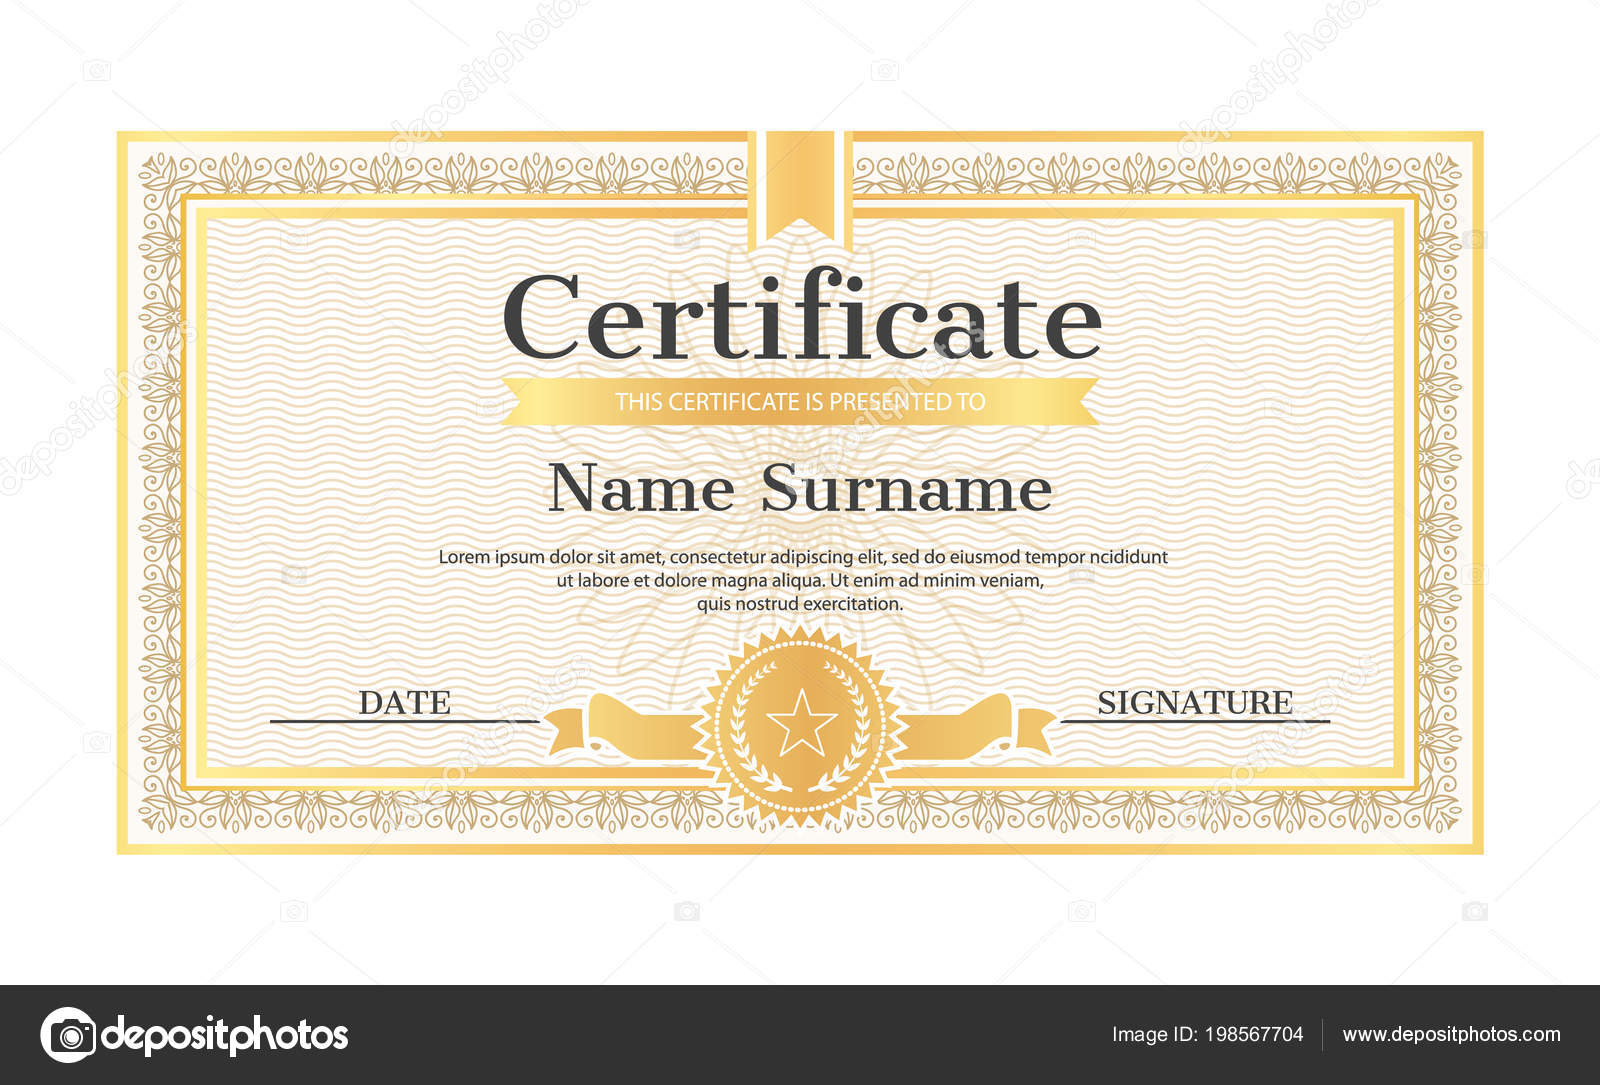 Certificate Template Editable Name Surname Date Stock Vector